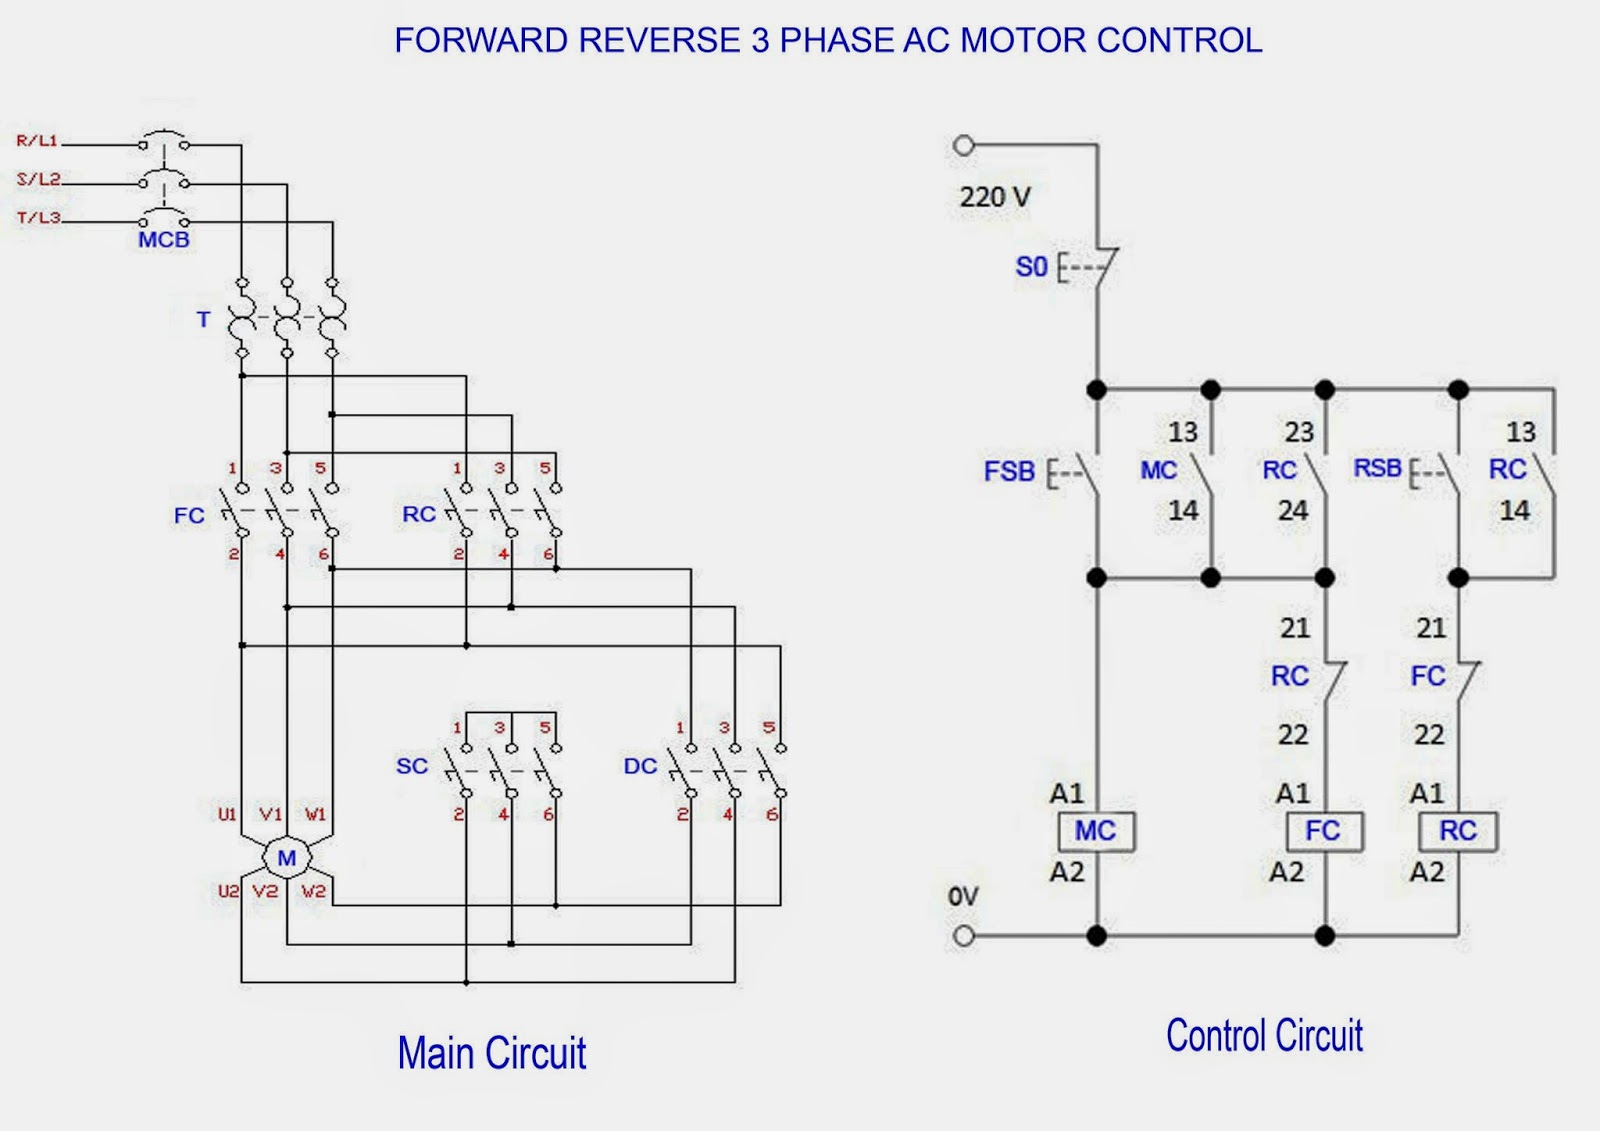 3 phase forward and reverse wiring diagram 3 auto wiring diagram forward reverse 3 phase ac motor control wiring diagram on 3 phase forward and reverse wiring